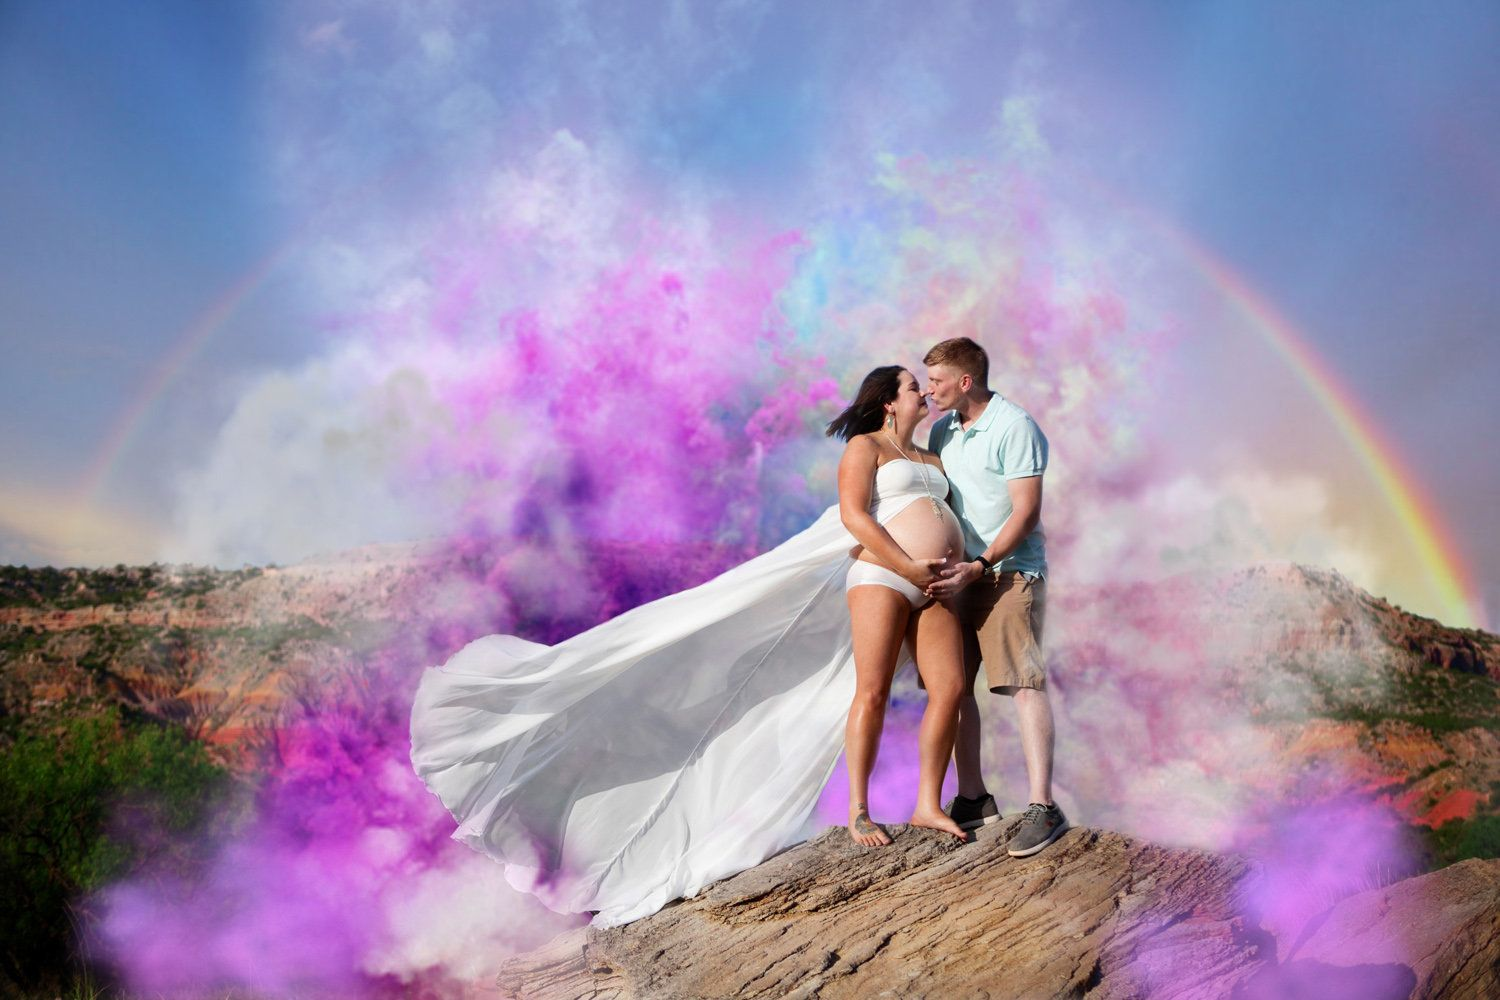 Brittney Studer of Brit Nicole Photography edited a photo of Britni and Jacob Lamance so they could celebrate their kids born after Britni's ectopic pregnancy.